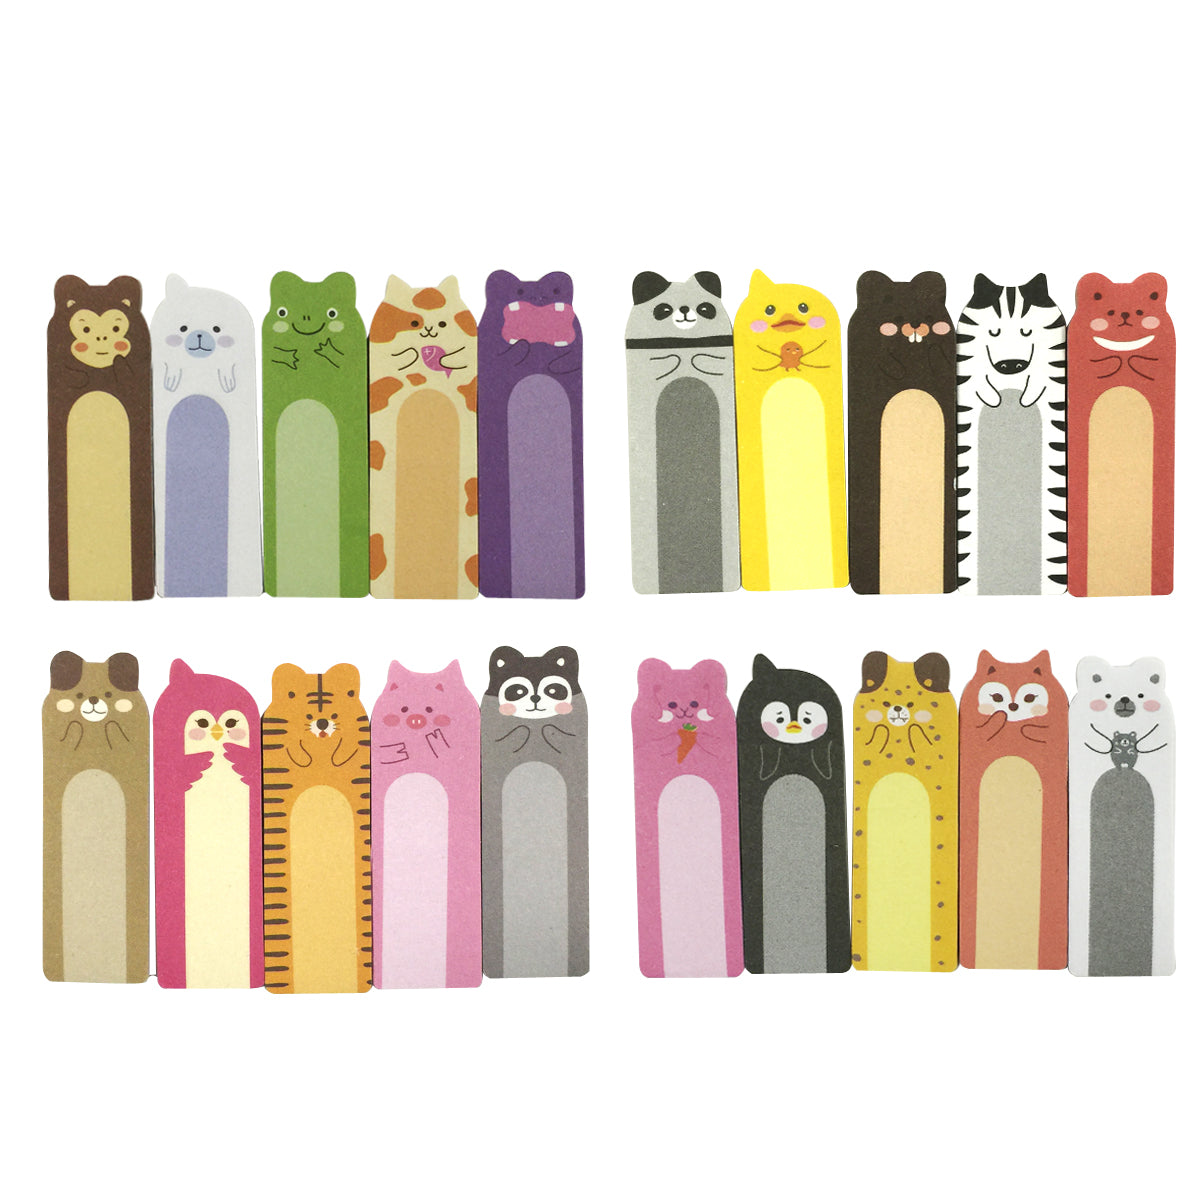 Wrapables Animal Friends Bookmark Flag Tab Sticky Notes (Set of 4)